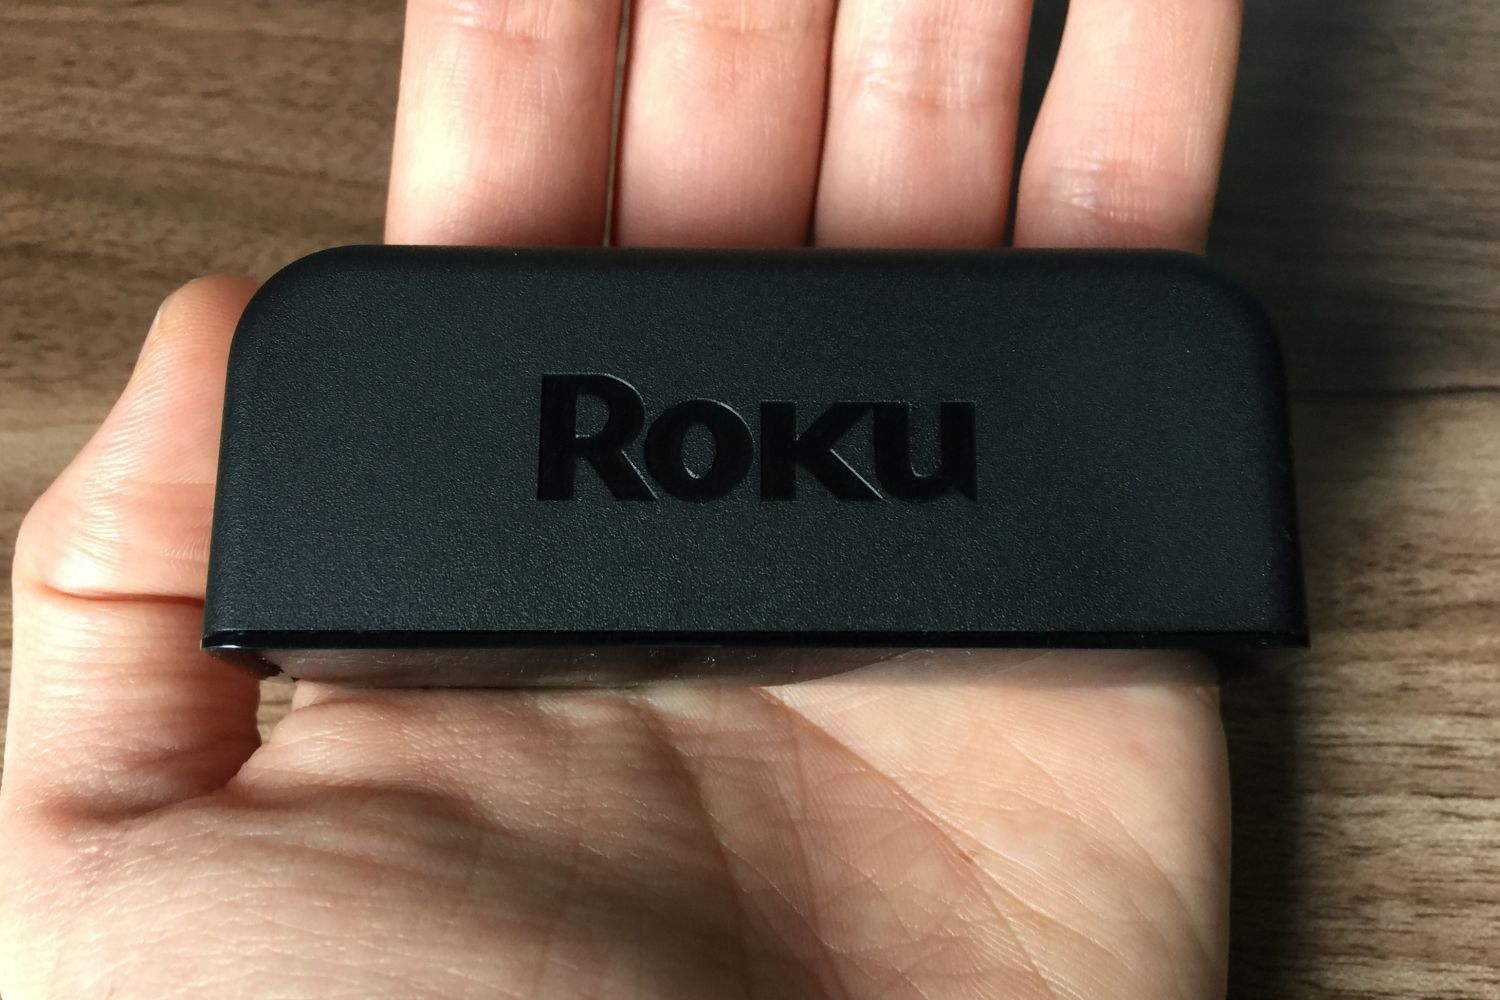 Roku Express review: A cheap streamer, but you get what you